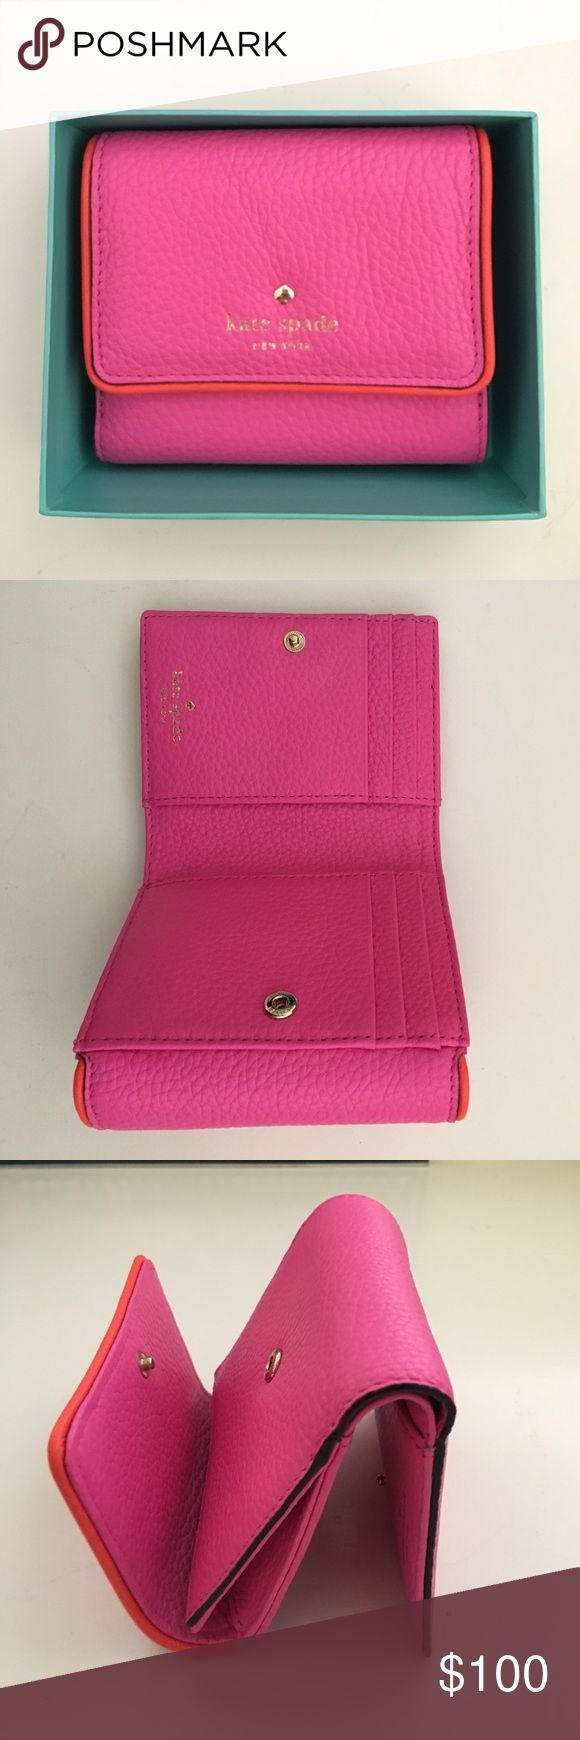 🎊Sale Price🎊Kate Spade Tavy Wallet ⭐️Sale Price⭐️ Buy now & it's yours!! Sale Price firm!Brand new with tags, original box, & care card. Never used. Lots of space & compartments. Compresses into a cute tiny form. Front coin purse & inside had credit card slots & full cash holder space. Kate Spade Bags Wallets